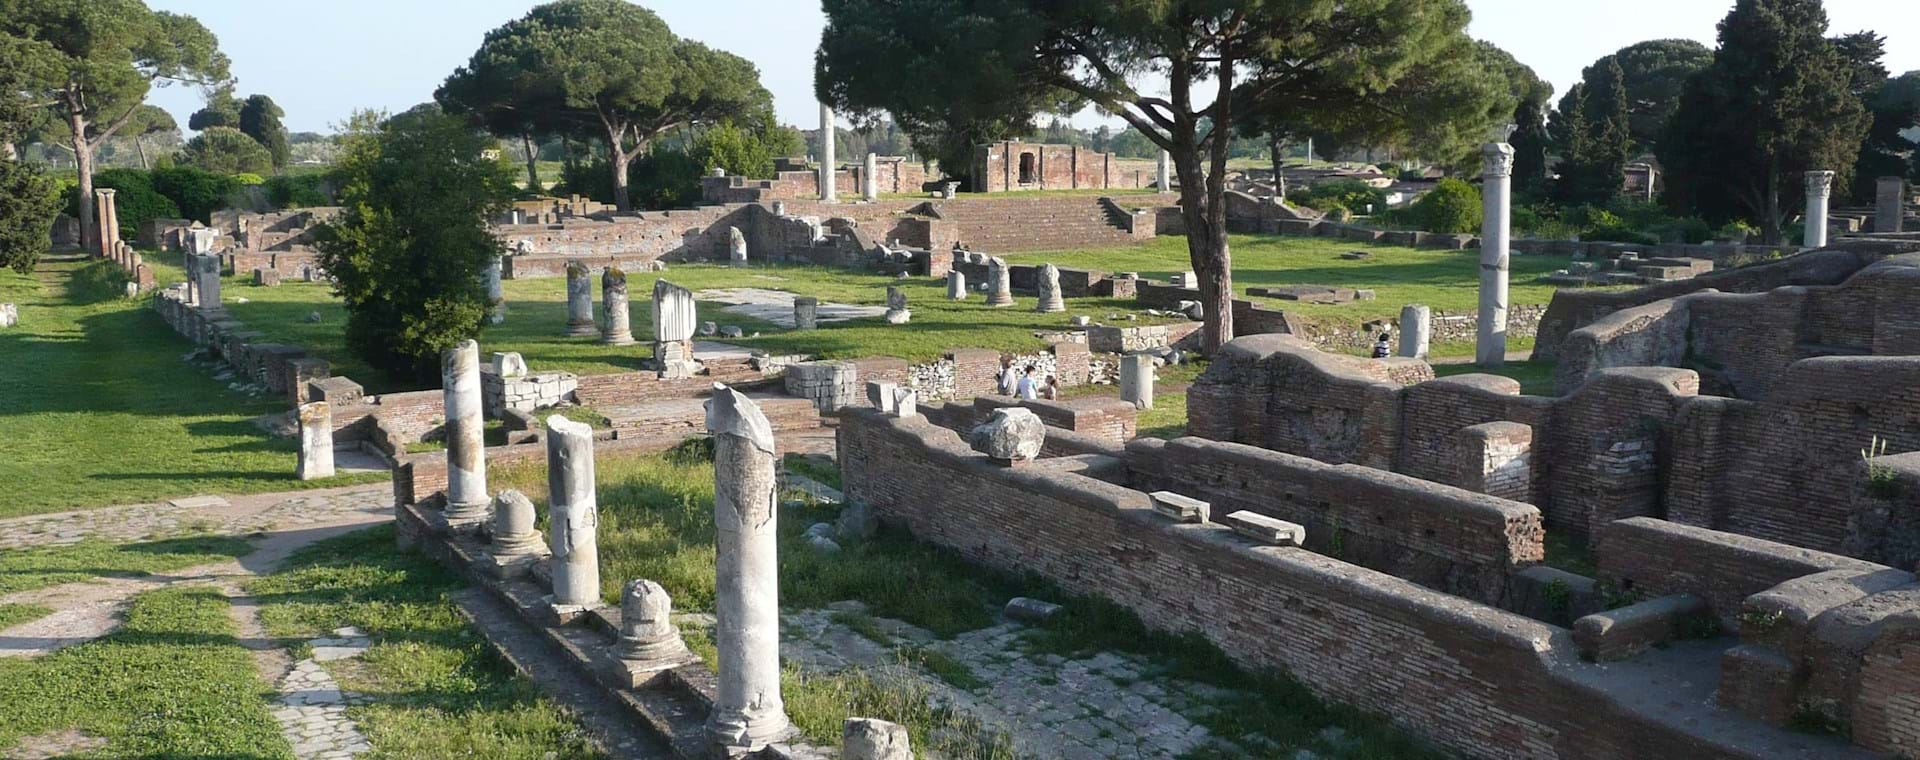 Ostia Antica Half-Day Tour: An Ancient Roman City Frozen in Time